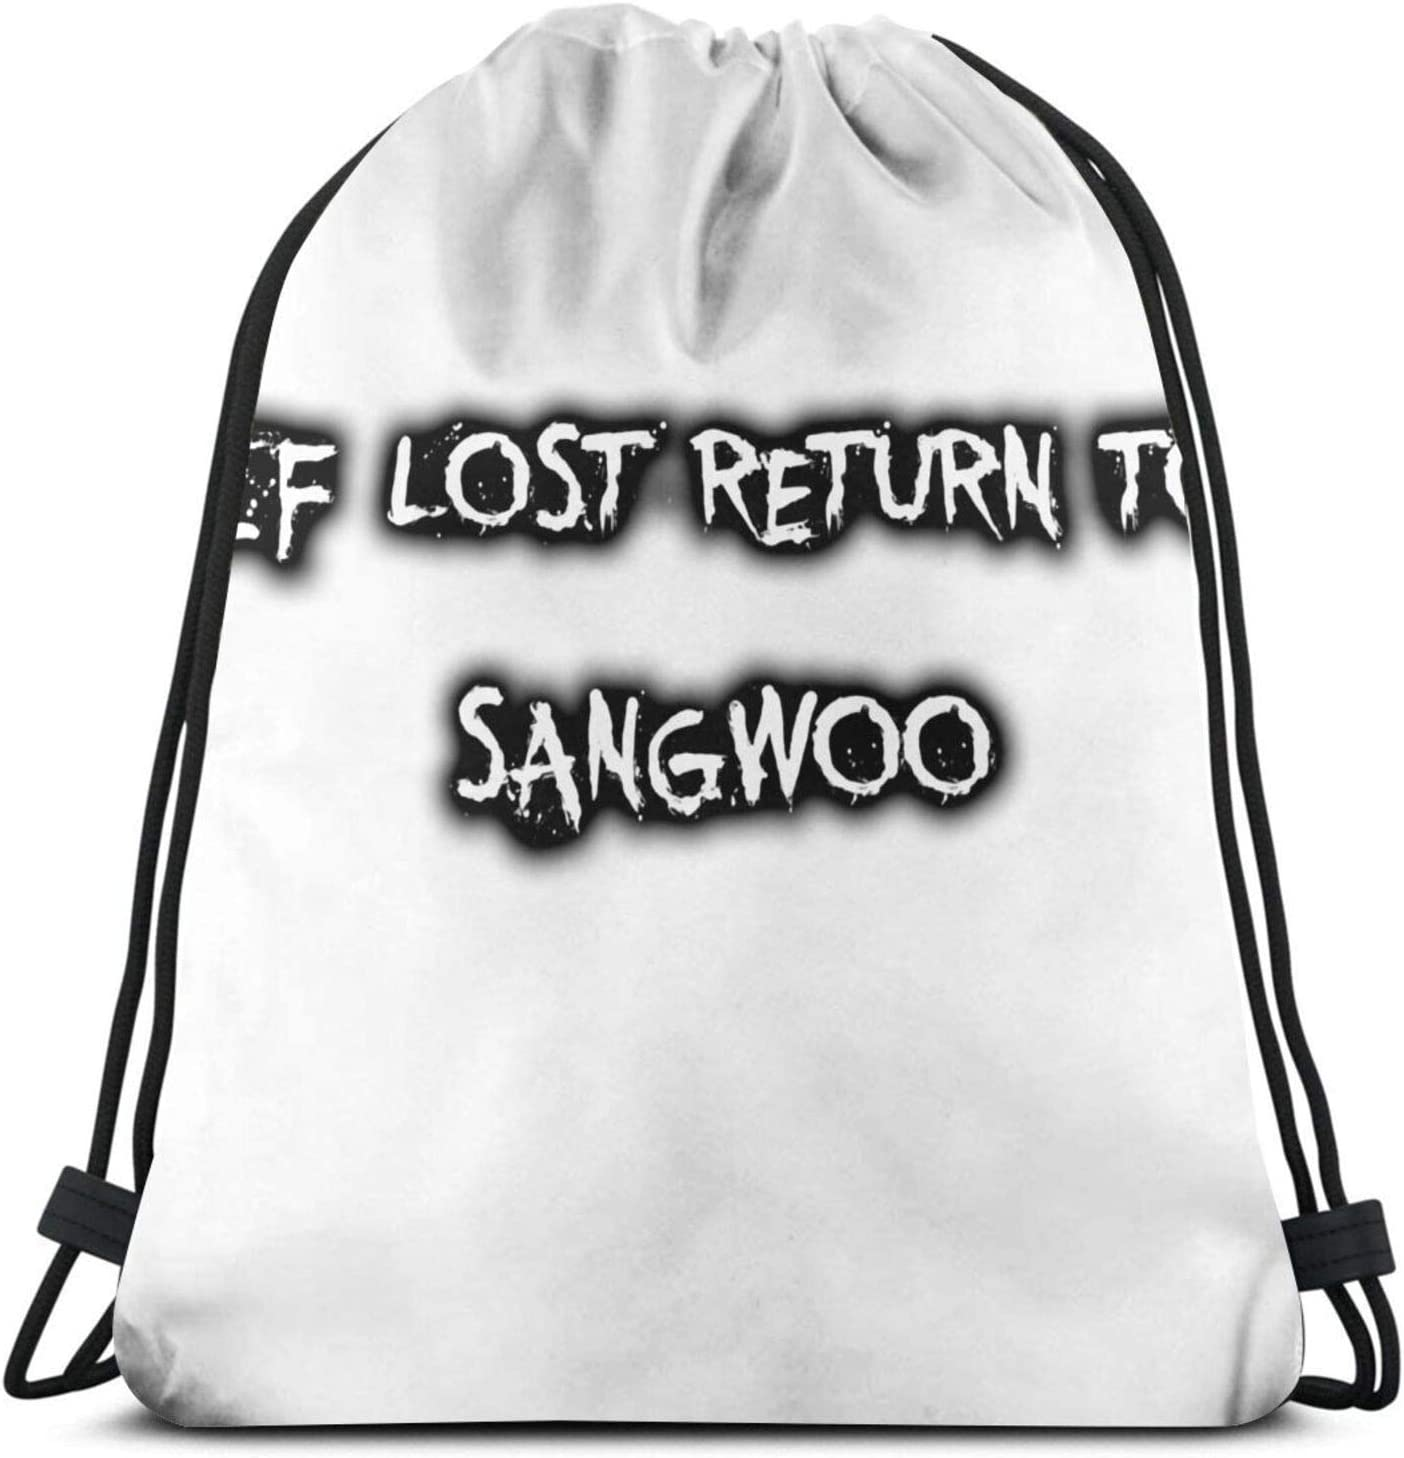 If Lost - Pullover Hoodie Drawstring Bag Sports ness Bag Travel Bag Gift Bag